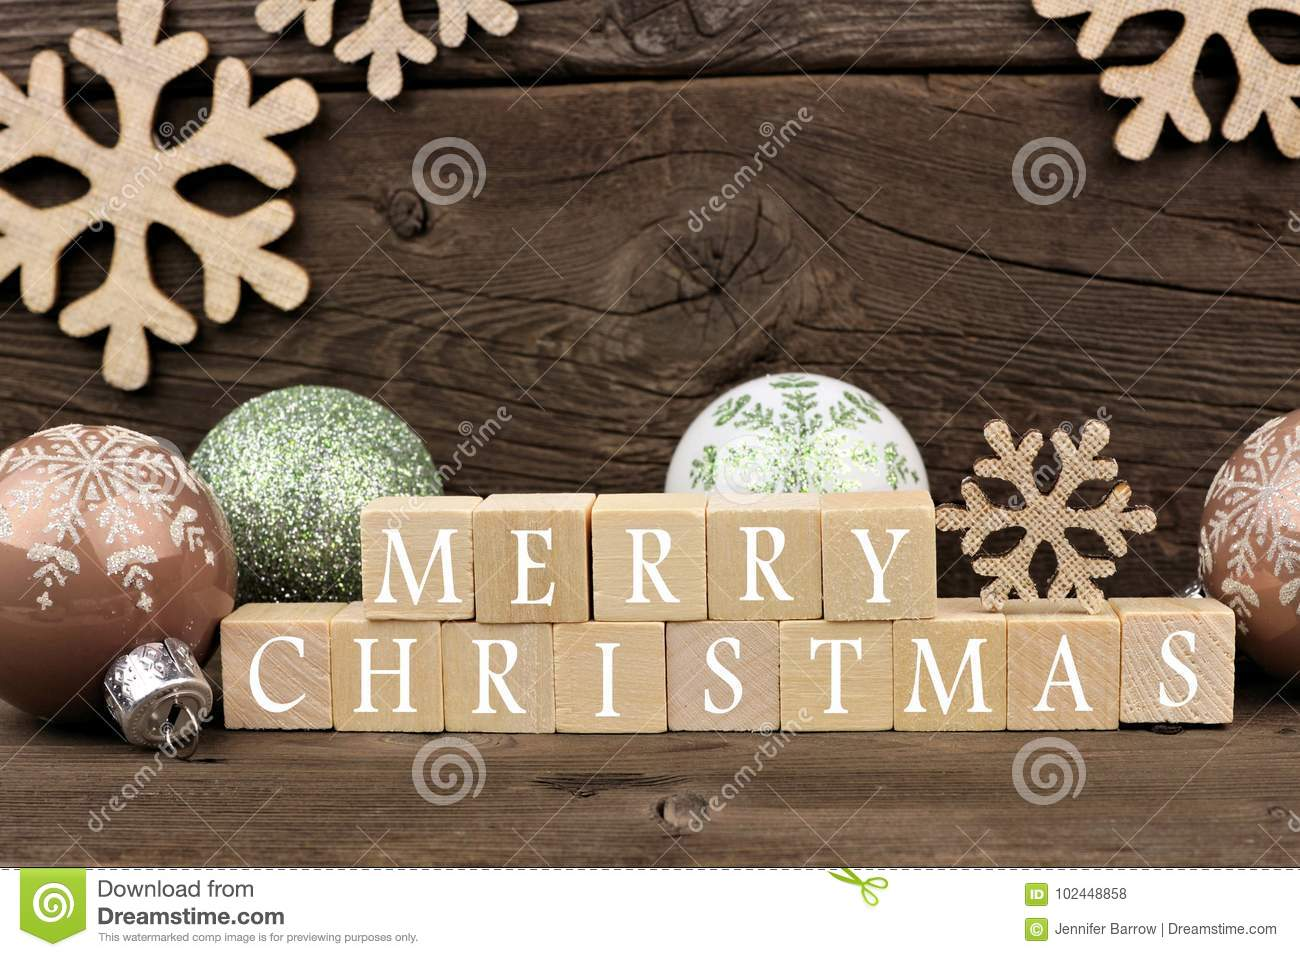 merry christmas wooden blocks with decor on rustic wood - Merry Christmas Decorative Blocks